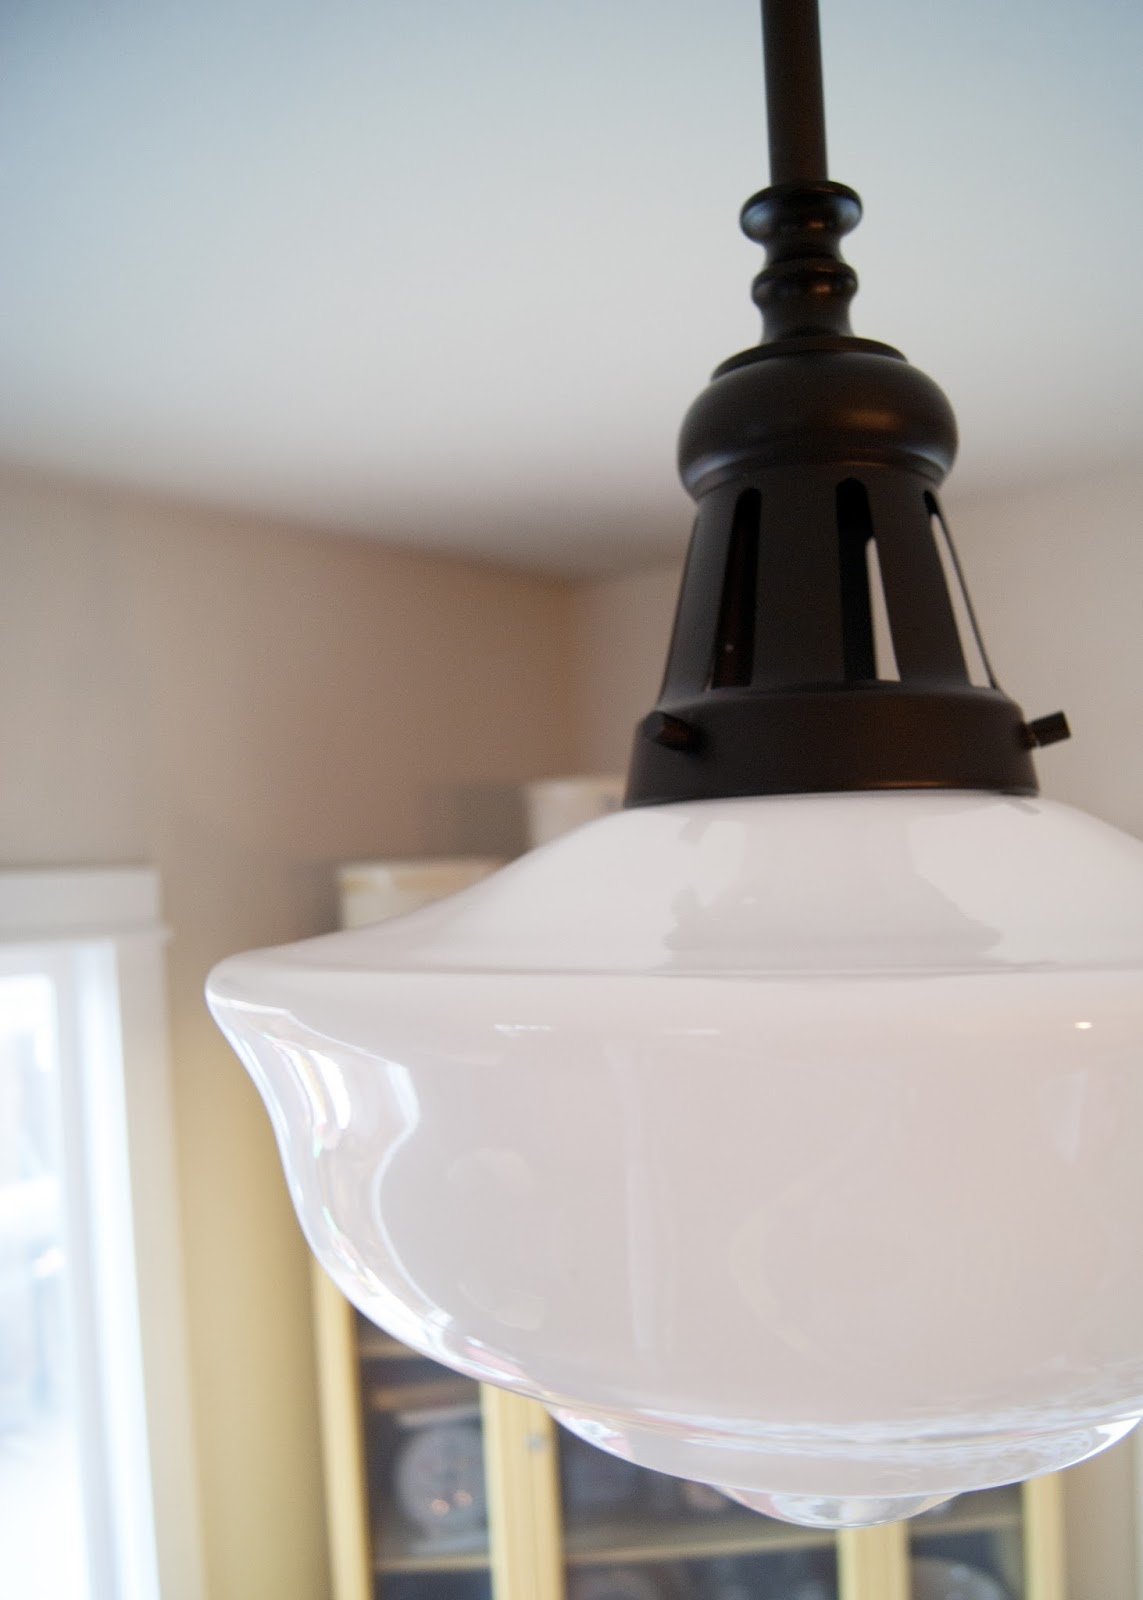 Schoolhouse light - vintage inspired light